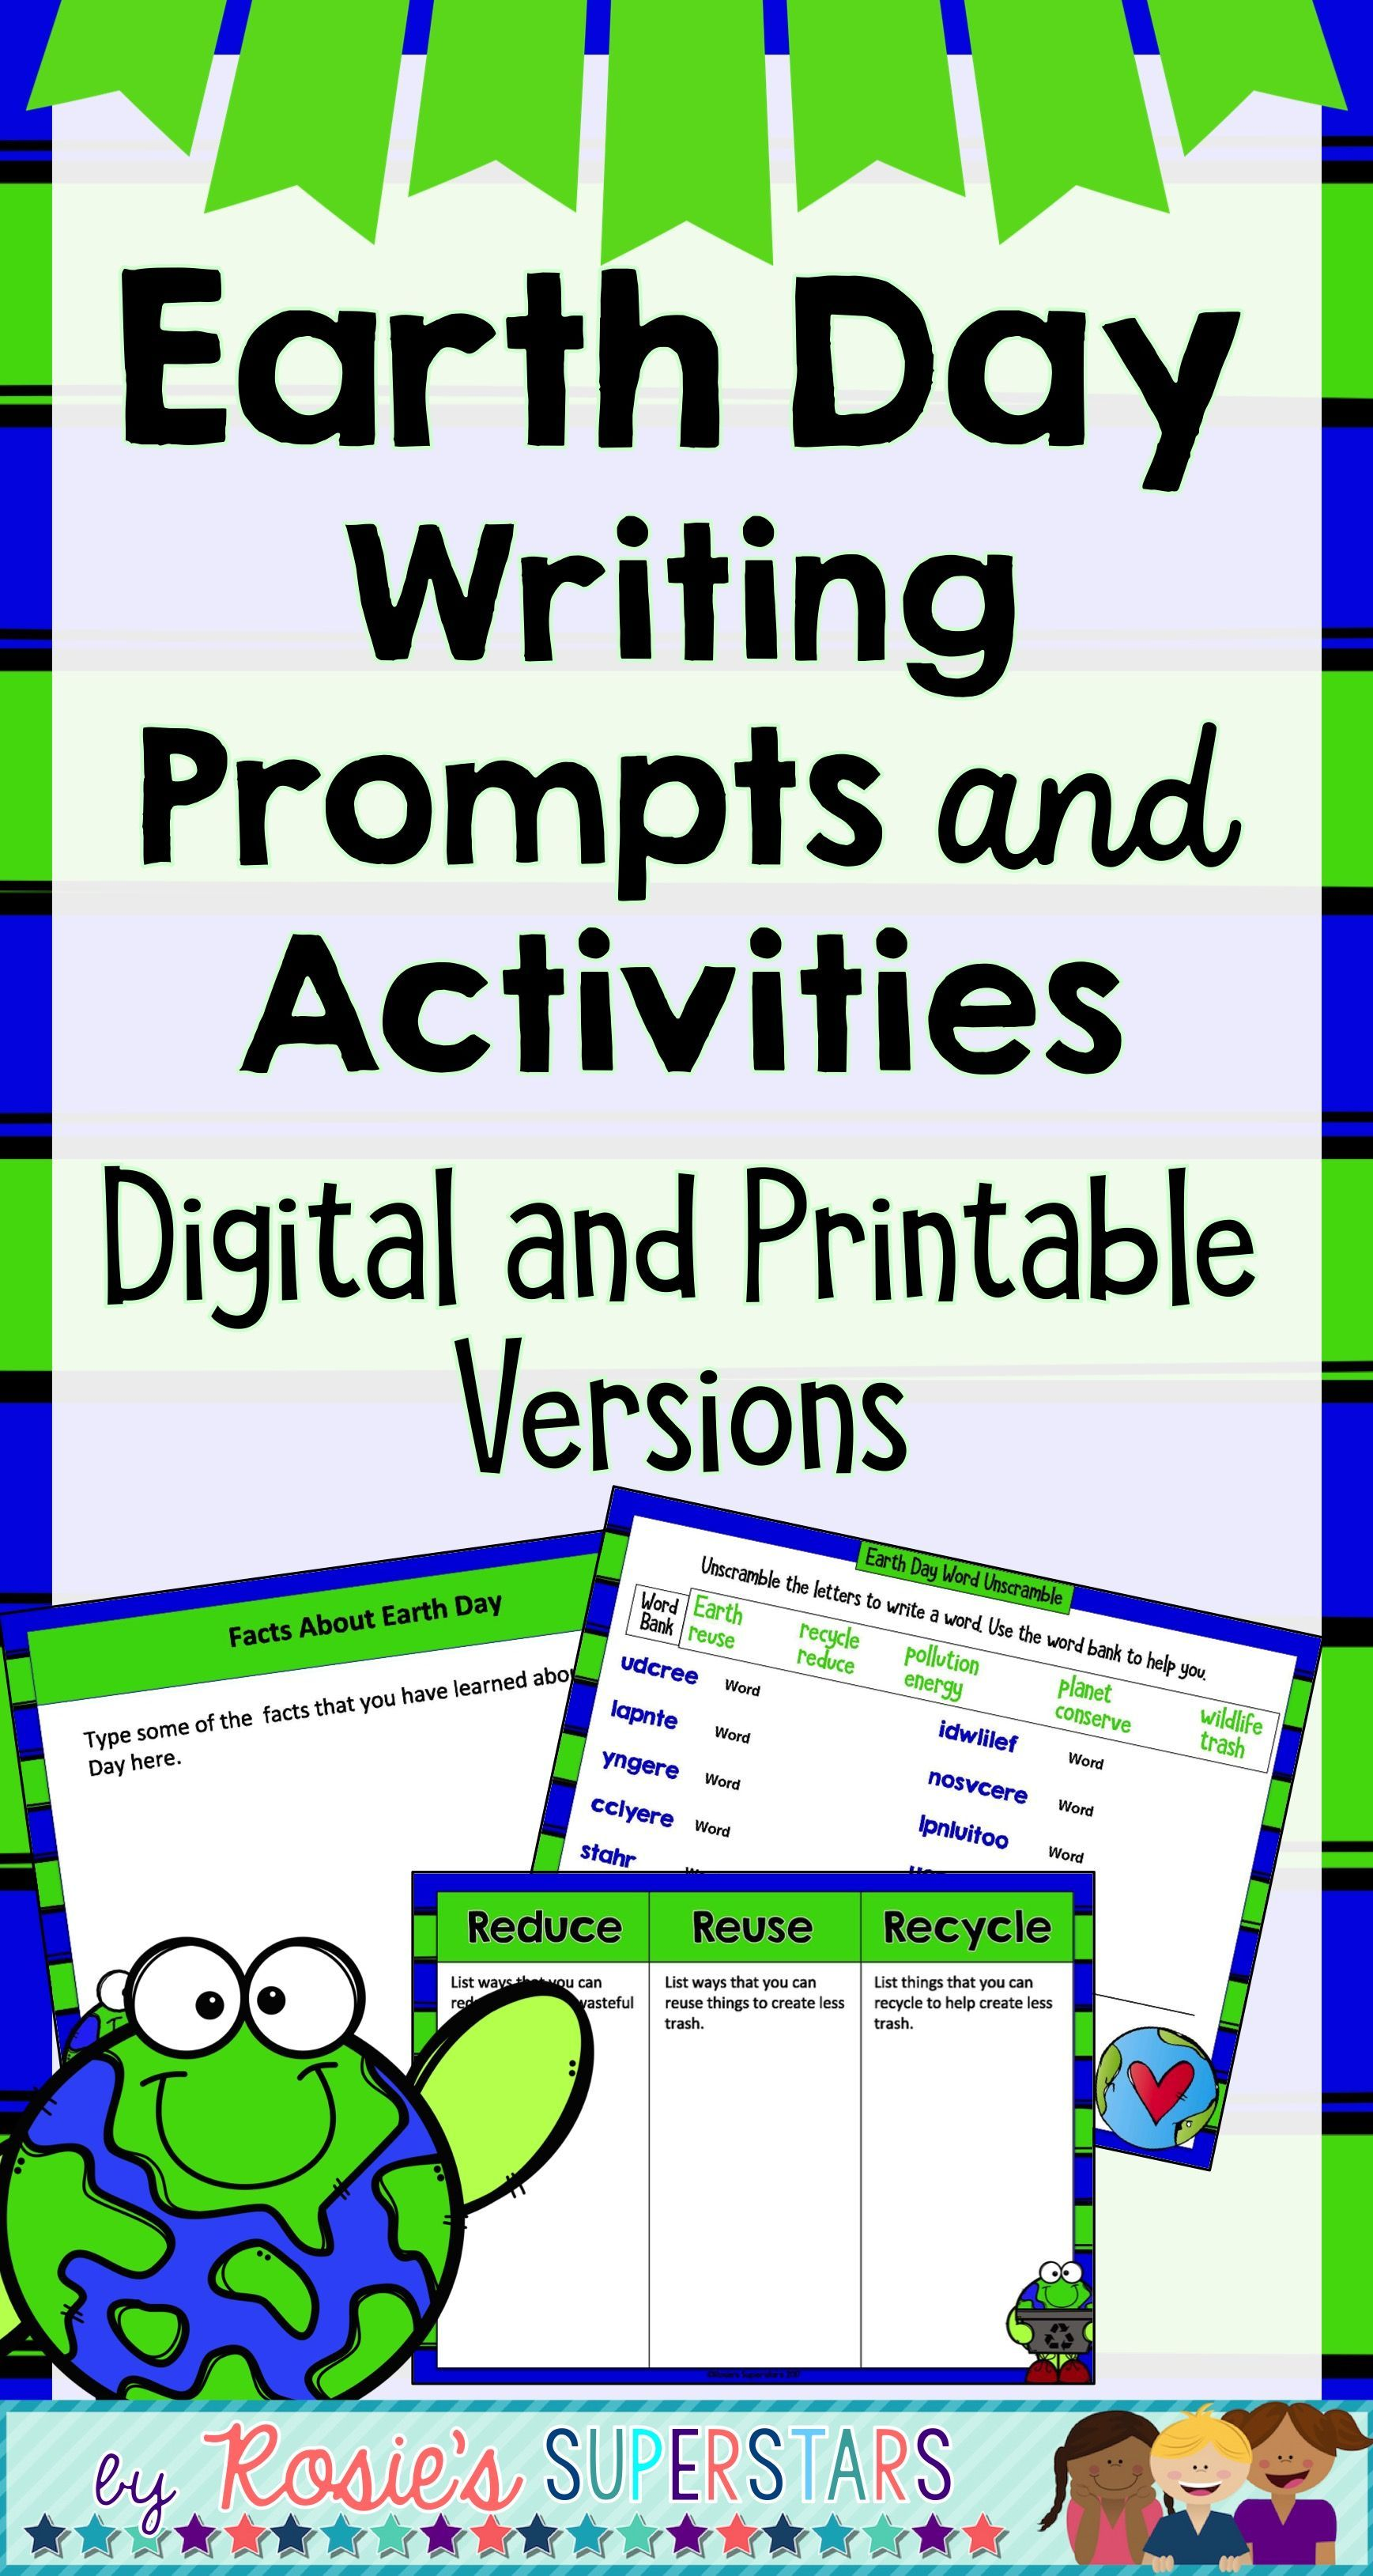 Earth Day Writing Prompts And Activities Digital And